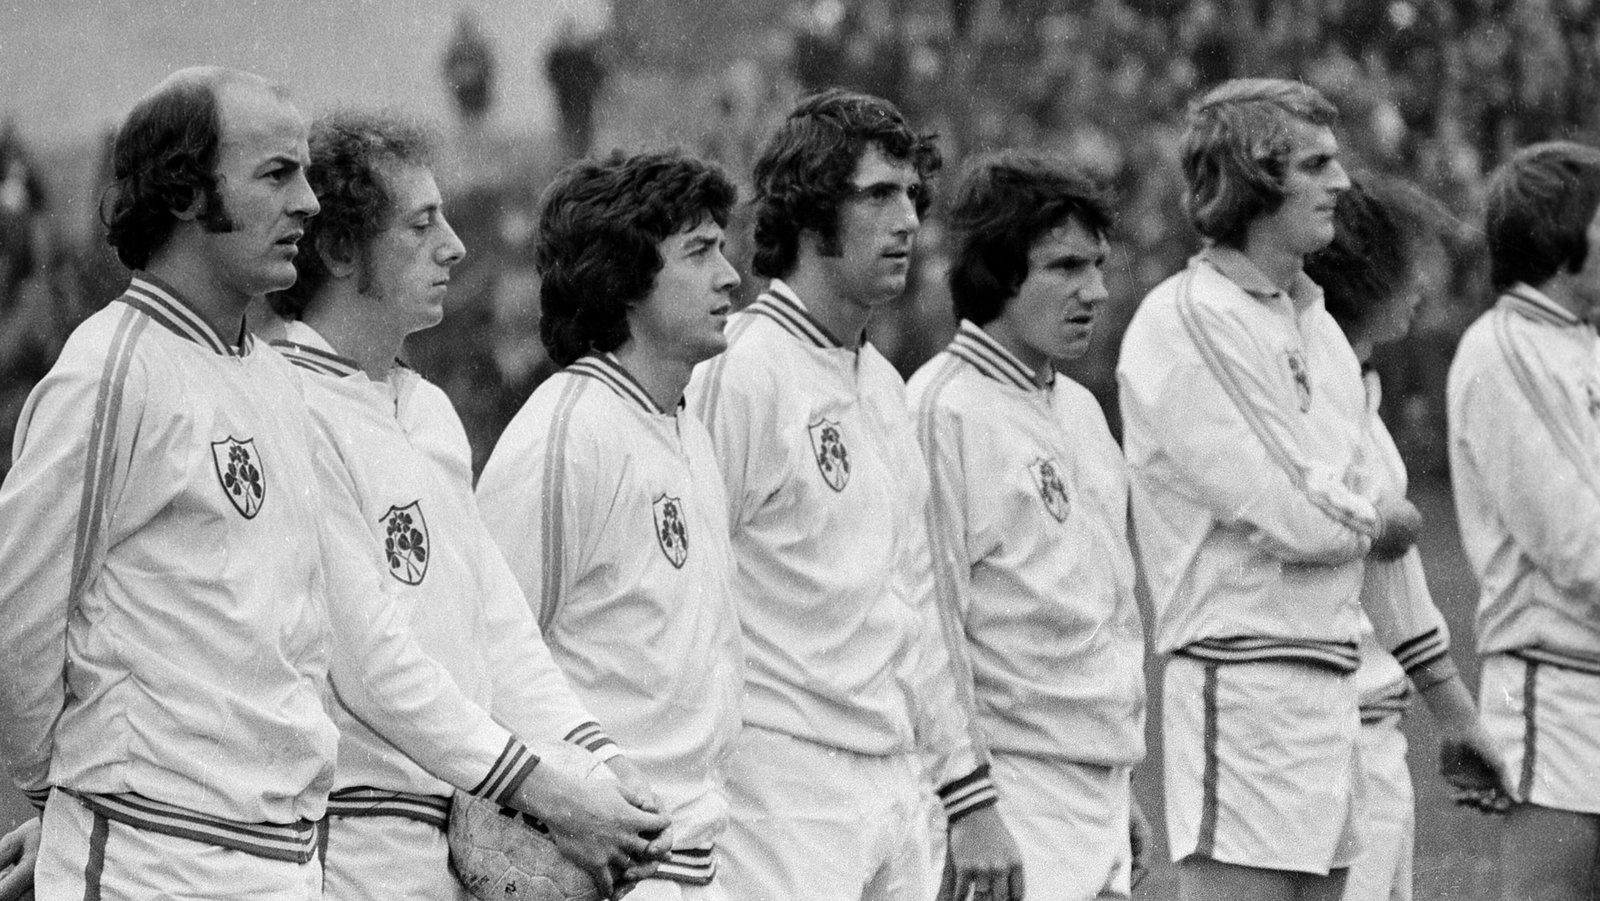 Image - Mancini, Martin, Kinnear, Givens, Treacy, Roche before the famous win over USSR